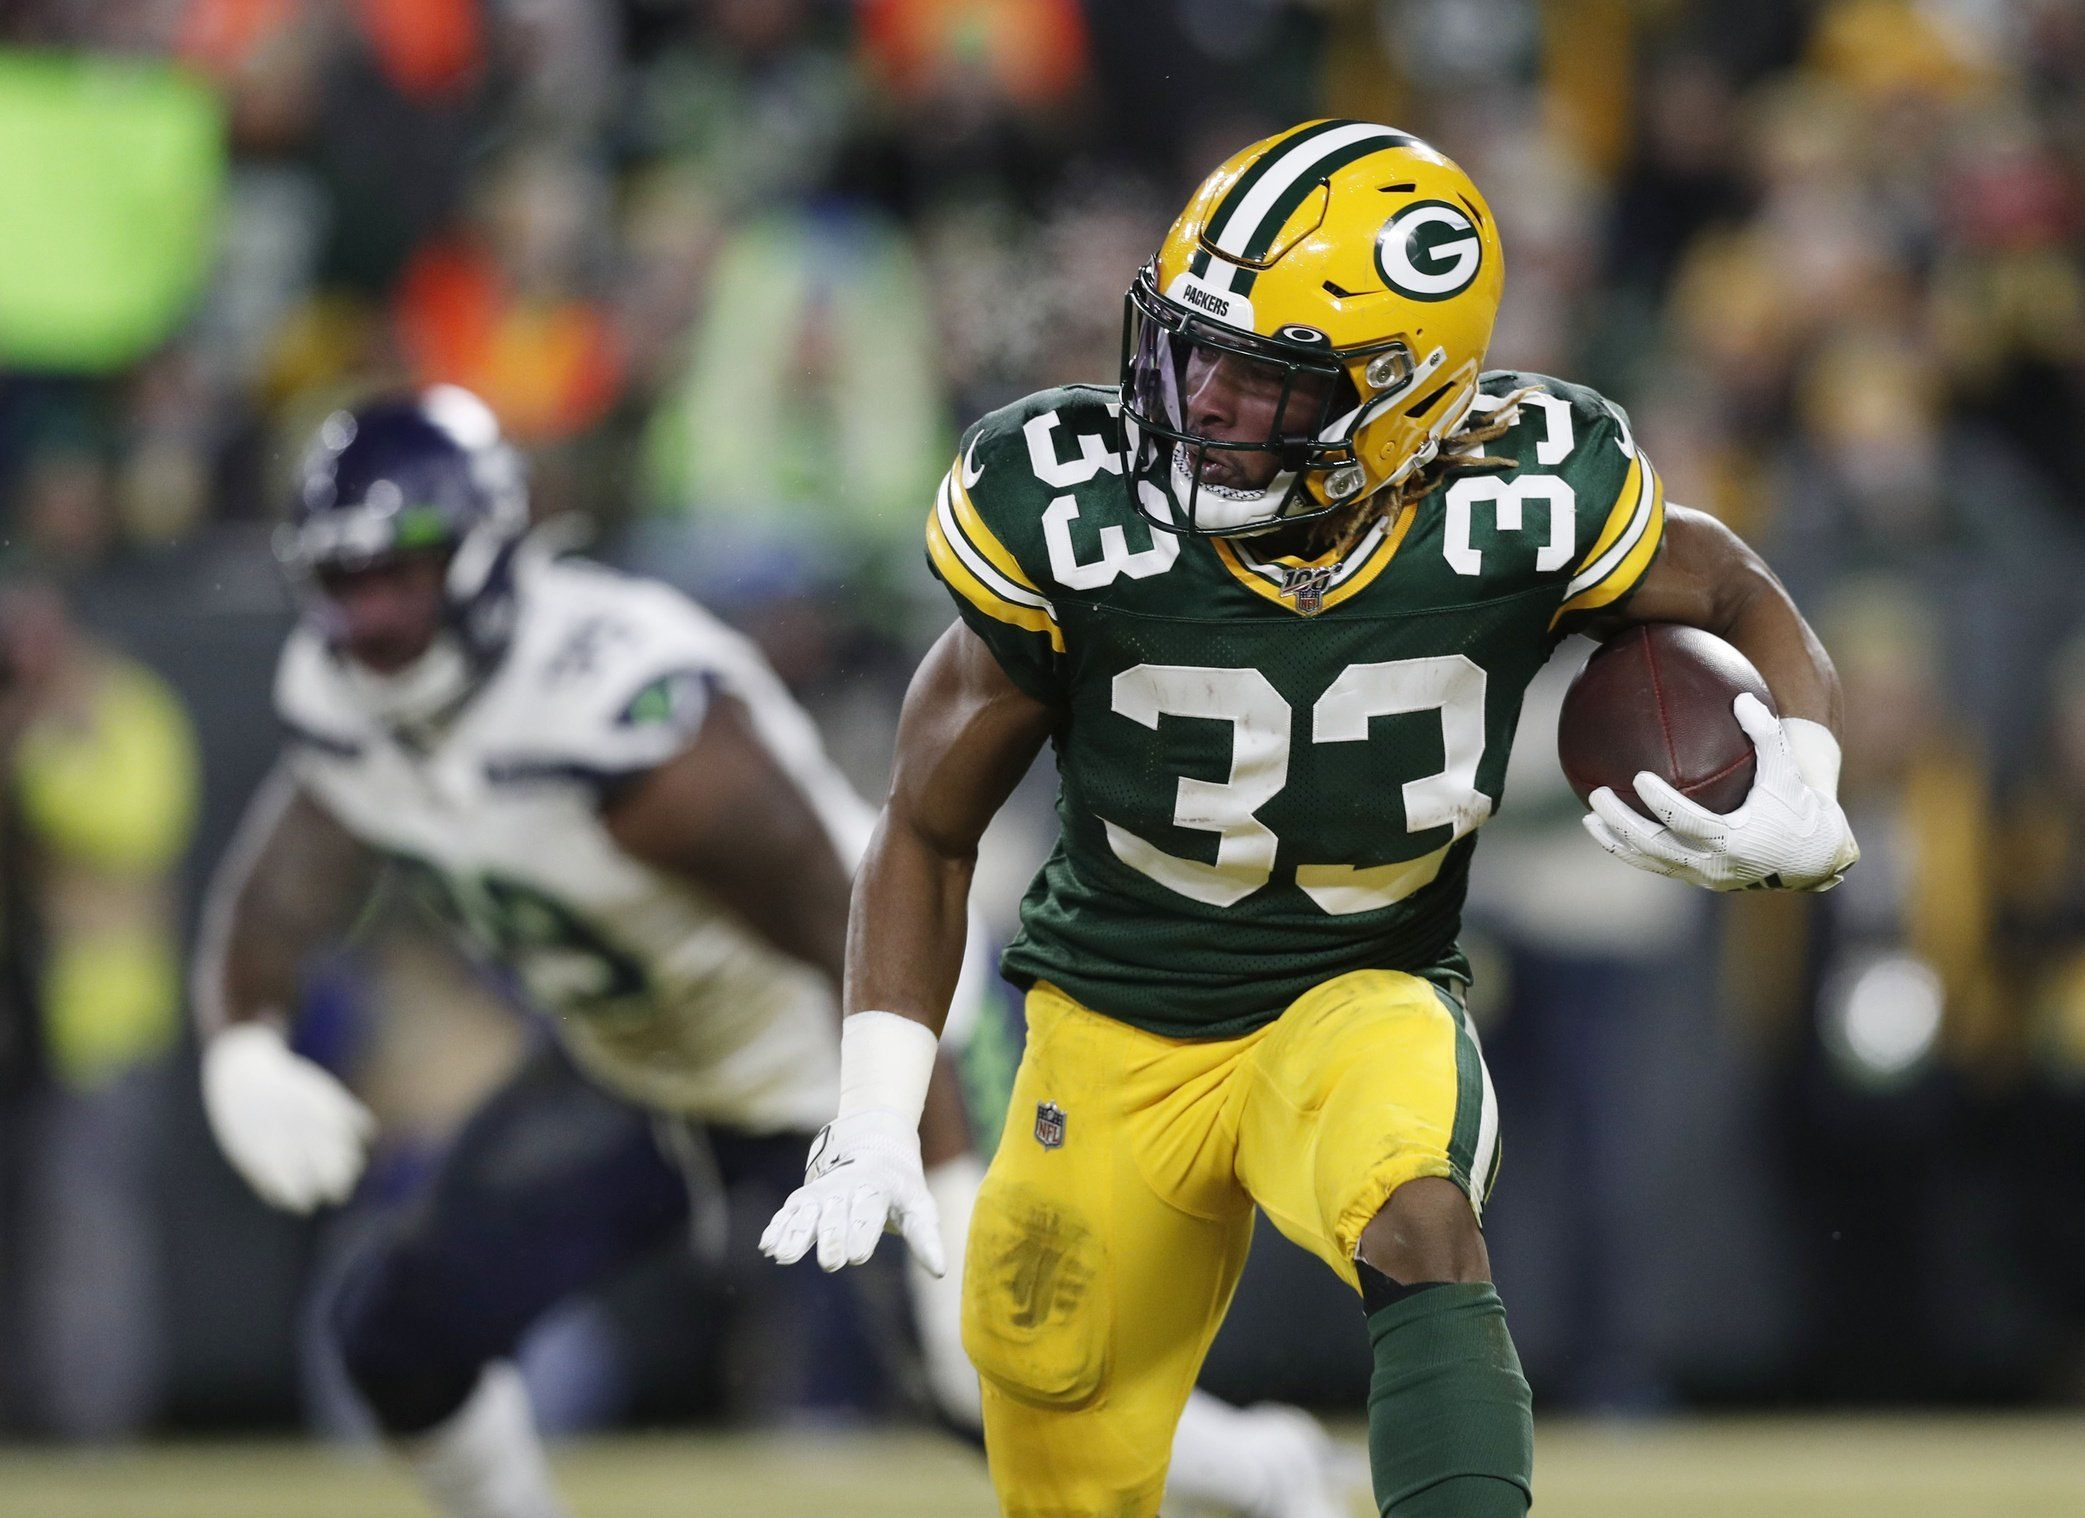 2020 Could Be Aaron Jones Final Year In Green Bay National Football League News In 2020 Nfl News National Football League Football League